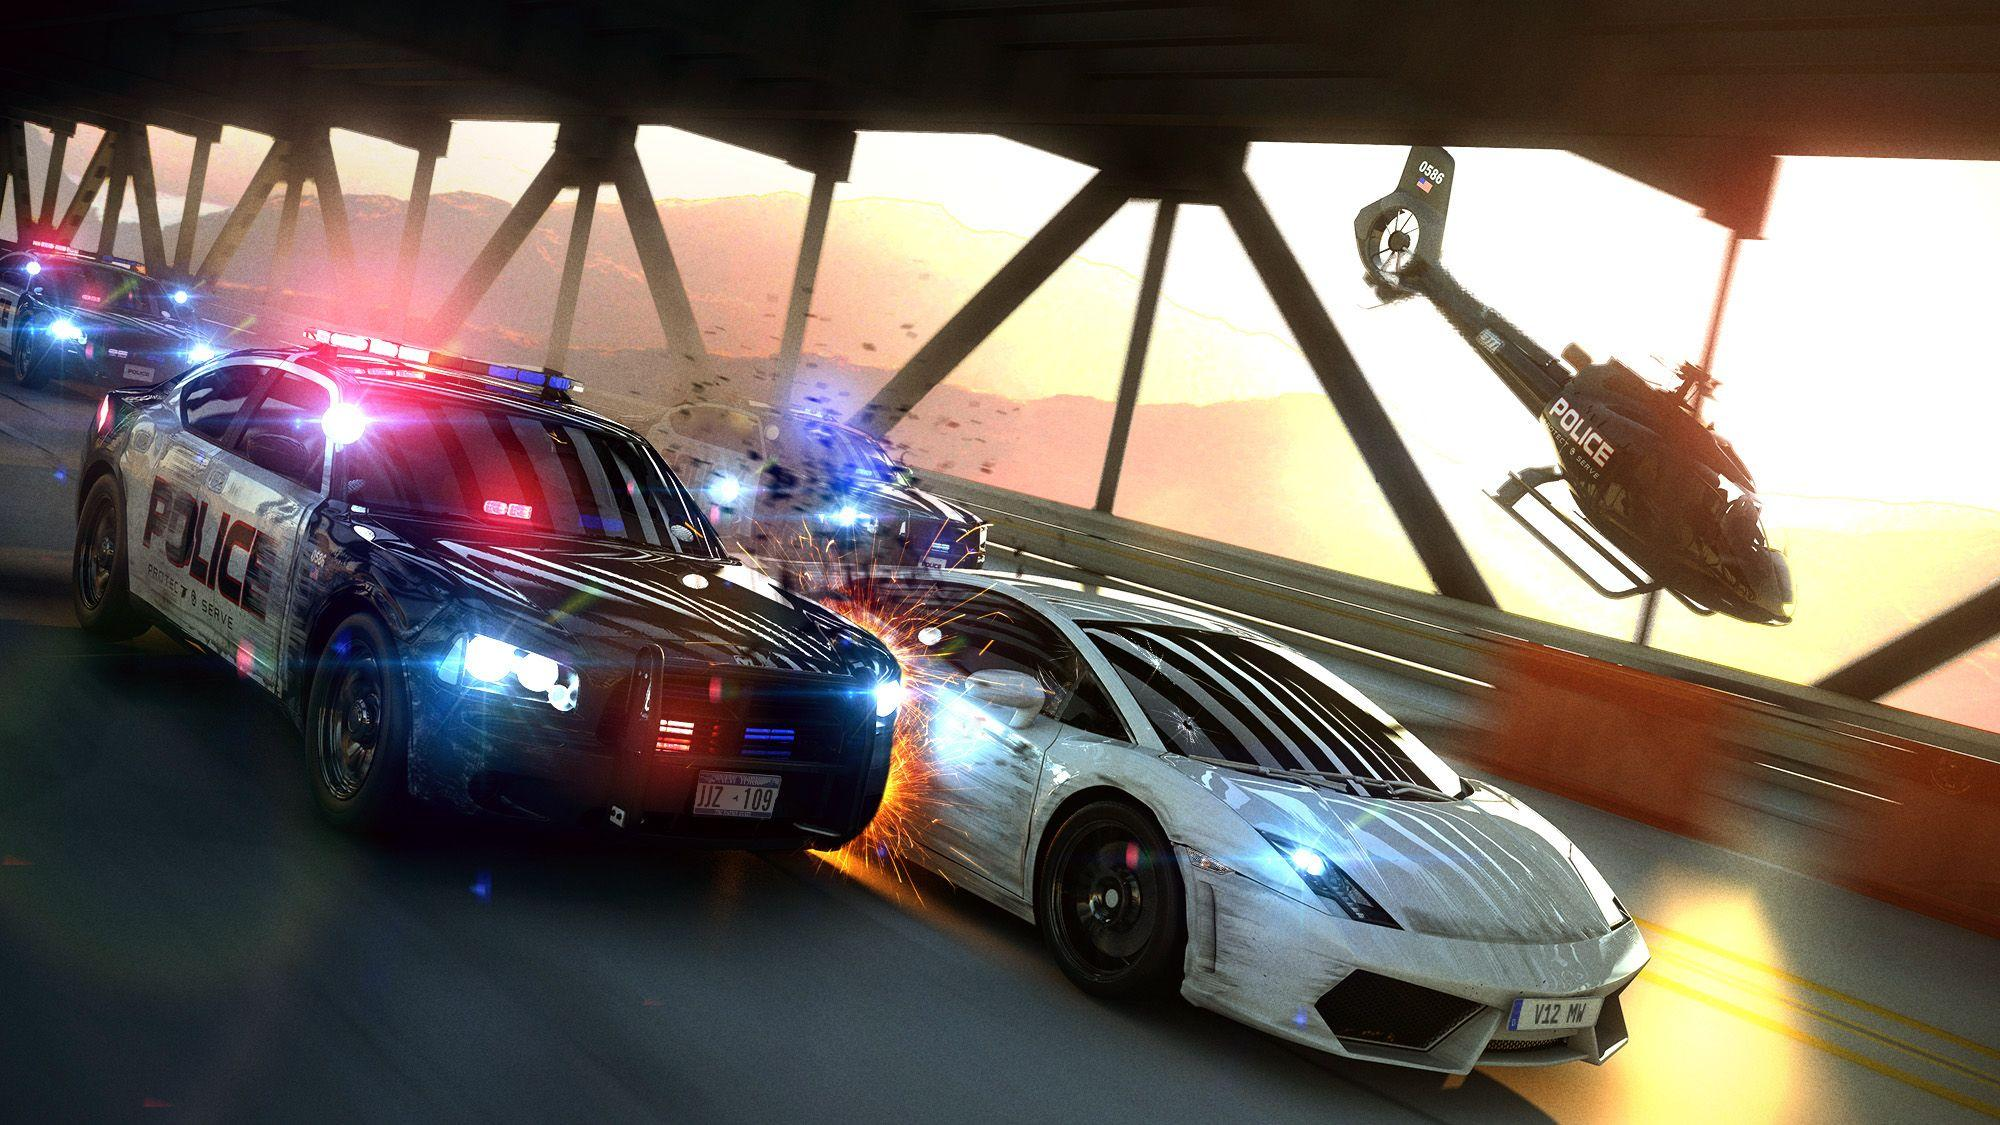 56 Need For Speed: Most Wanted HD Wallpapers | Backgrounds ...